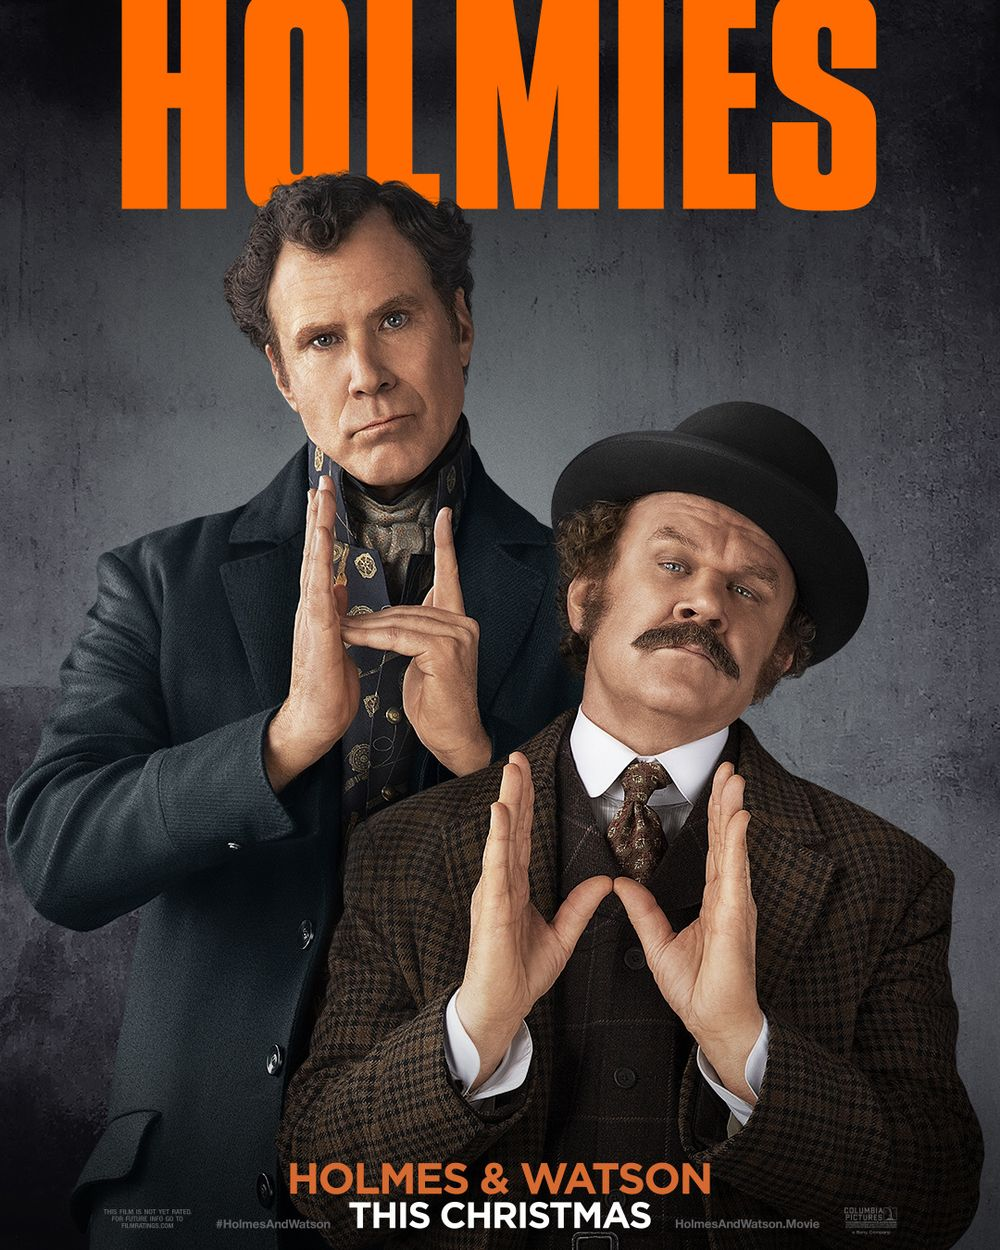 Holmes & Watson Movie Review